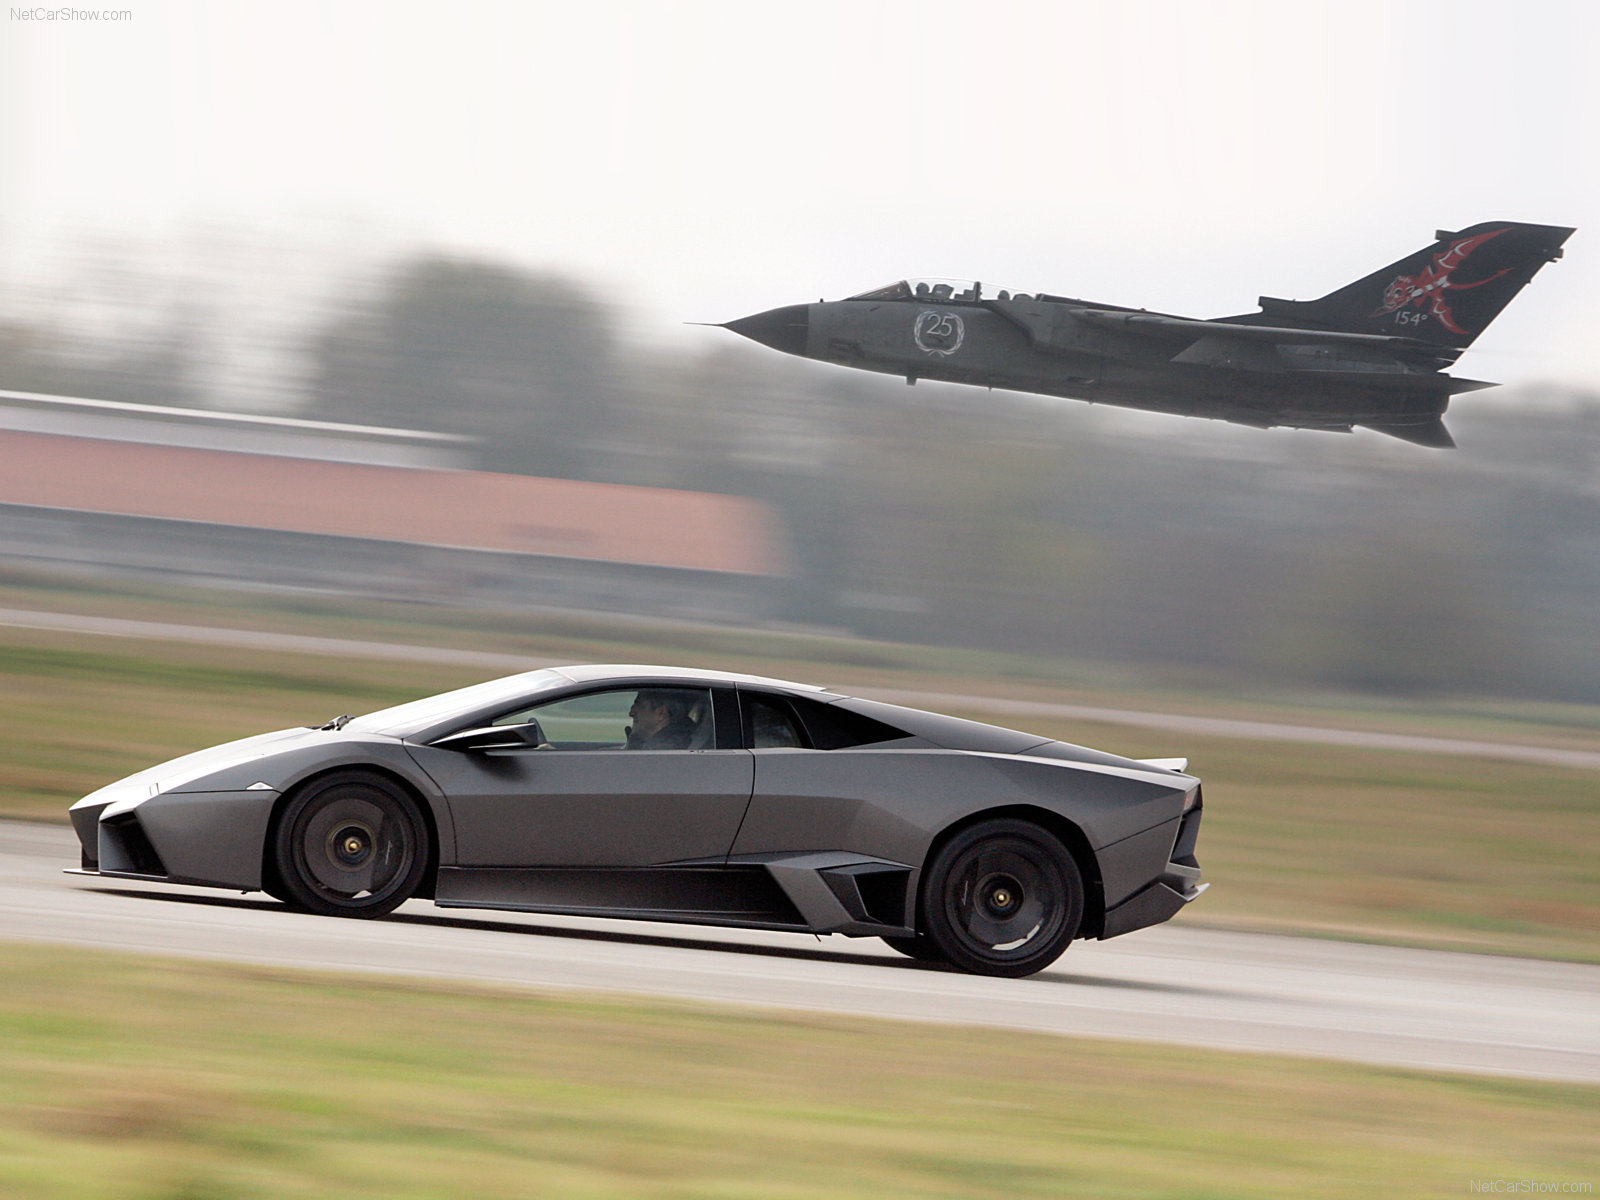 lamborghini reventon image wallpaper - photo #5